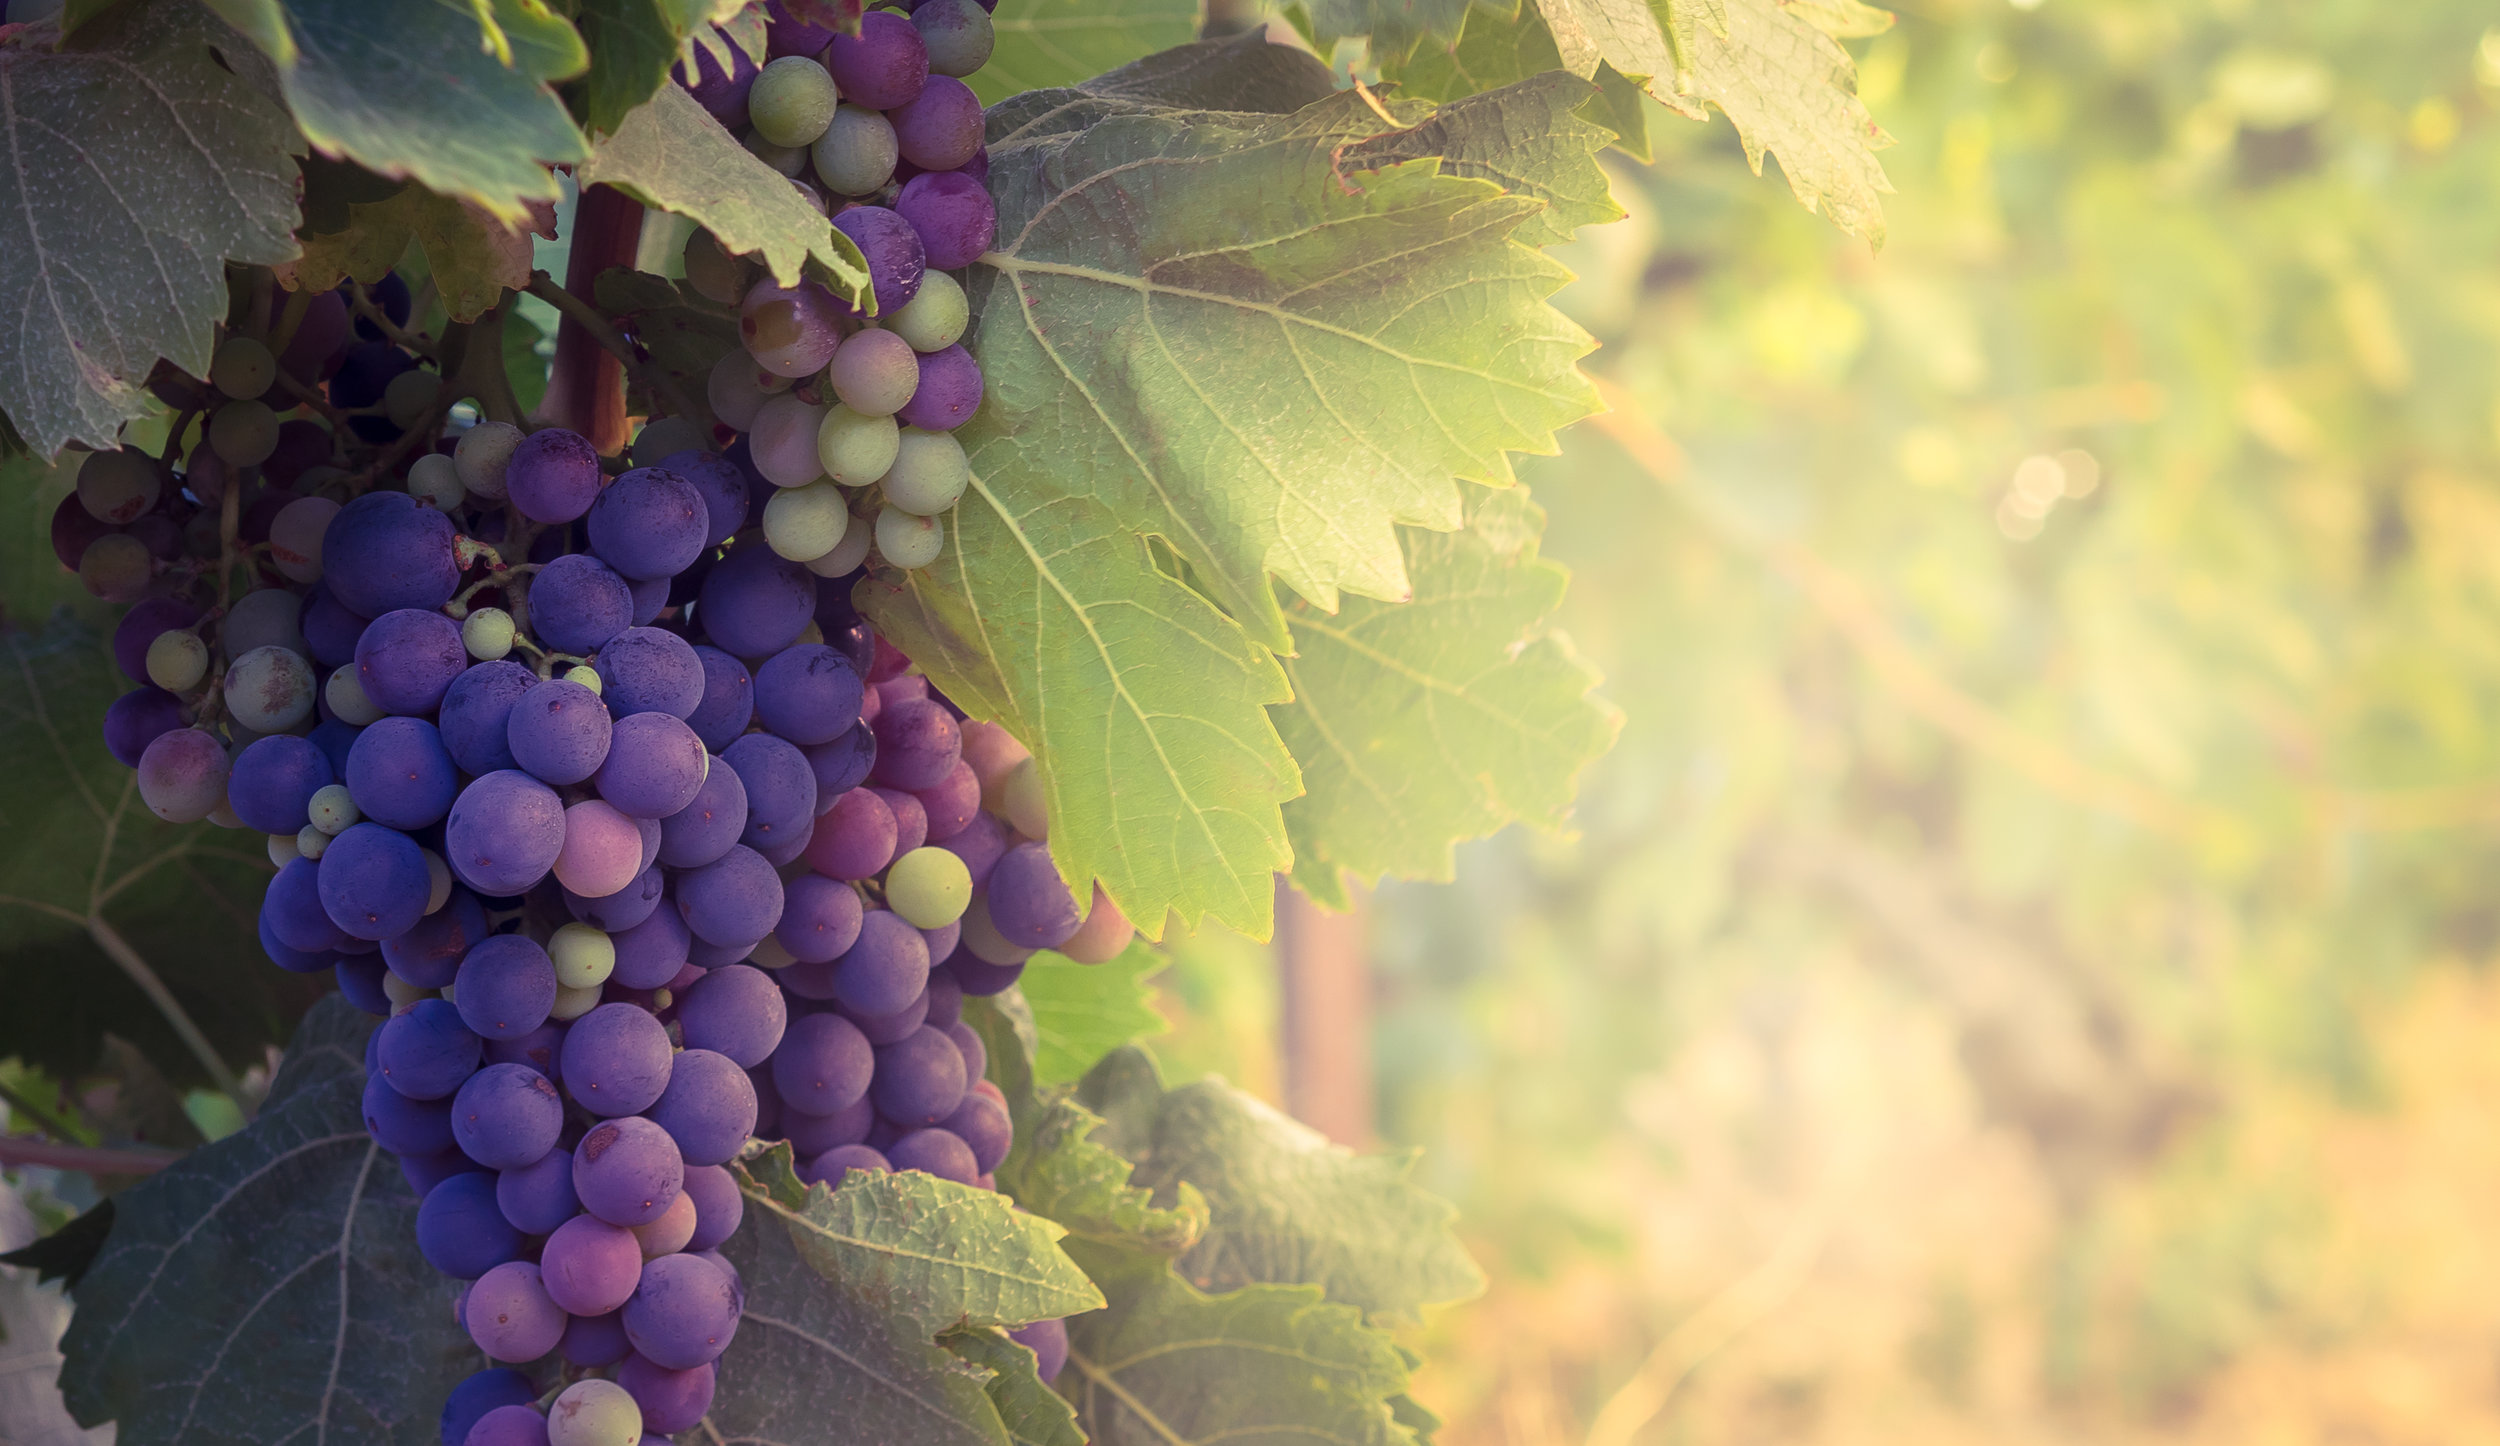 We're not 100% sure that these are merlot grapes but it's a nice pic.